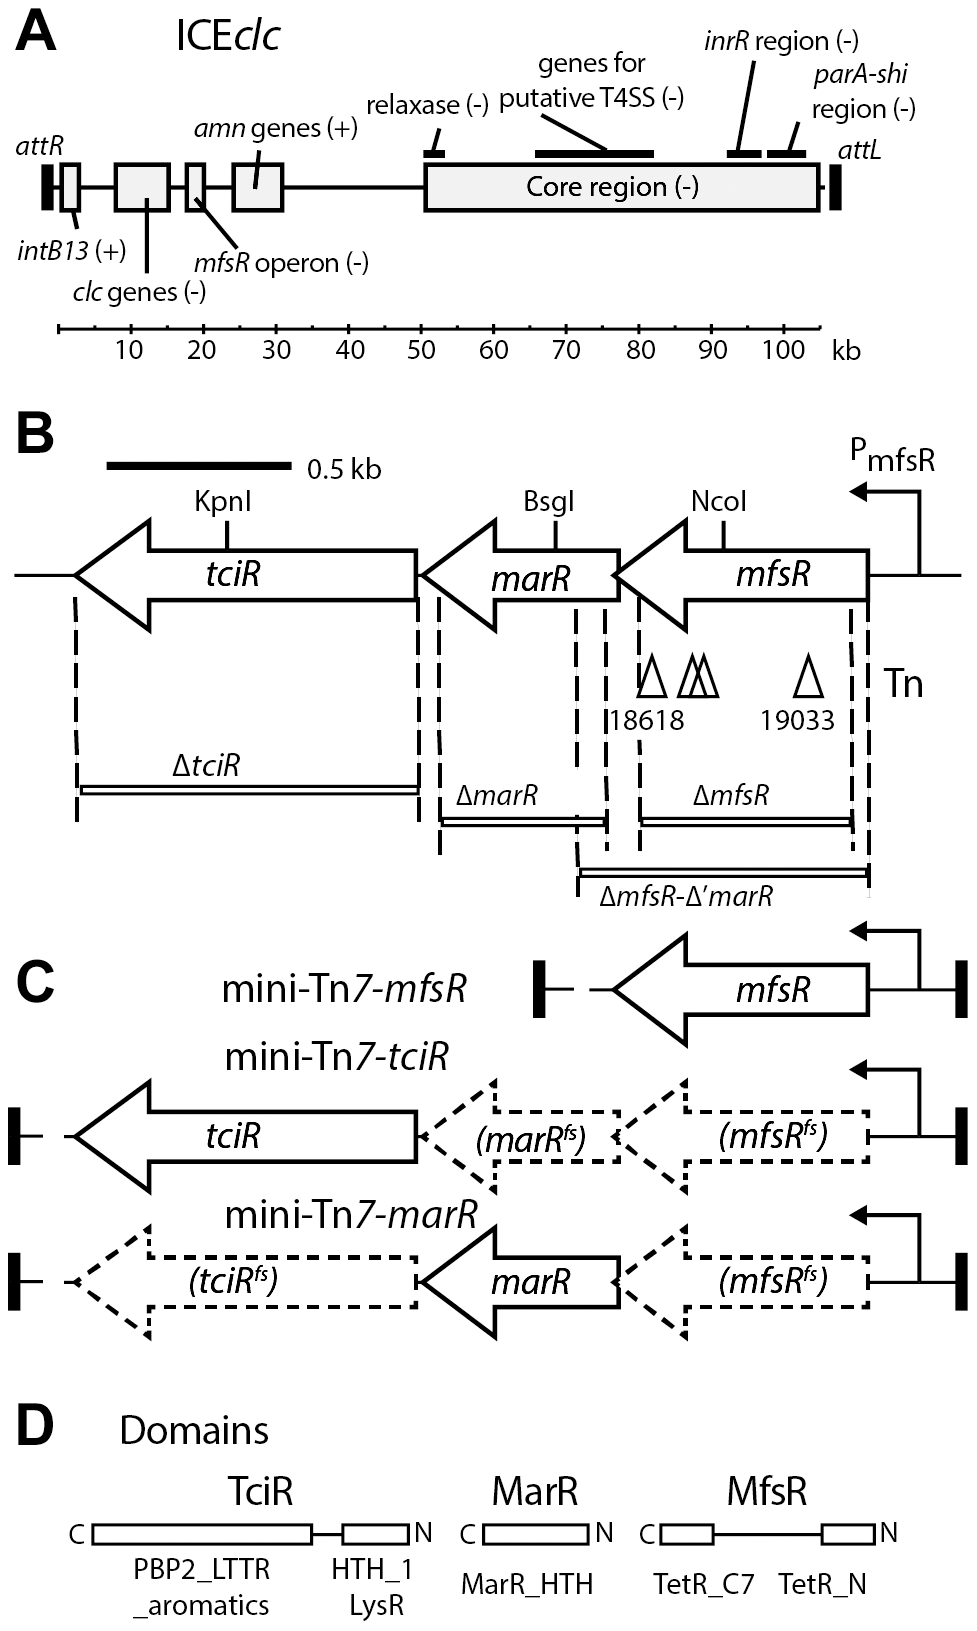 Schematic overview of ICE<i>clc</i> and the location of the genes relevant to this study.